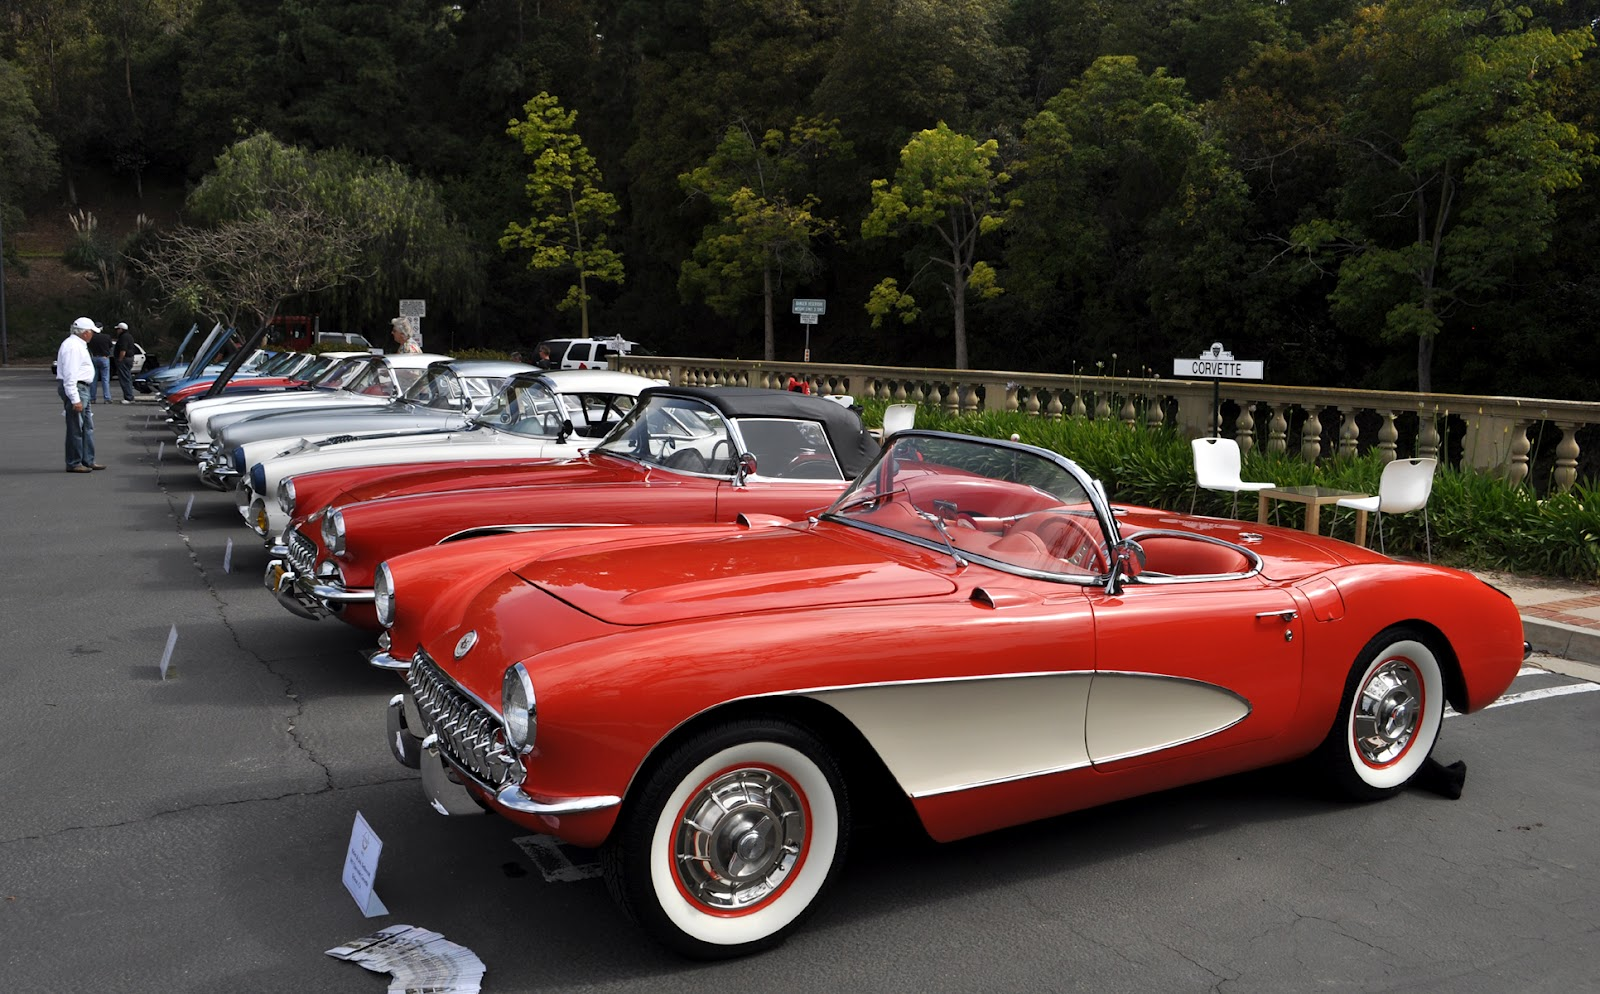 Classic Cars Authority: The Corvette row was long and had a ...